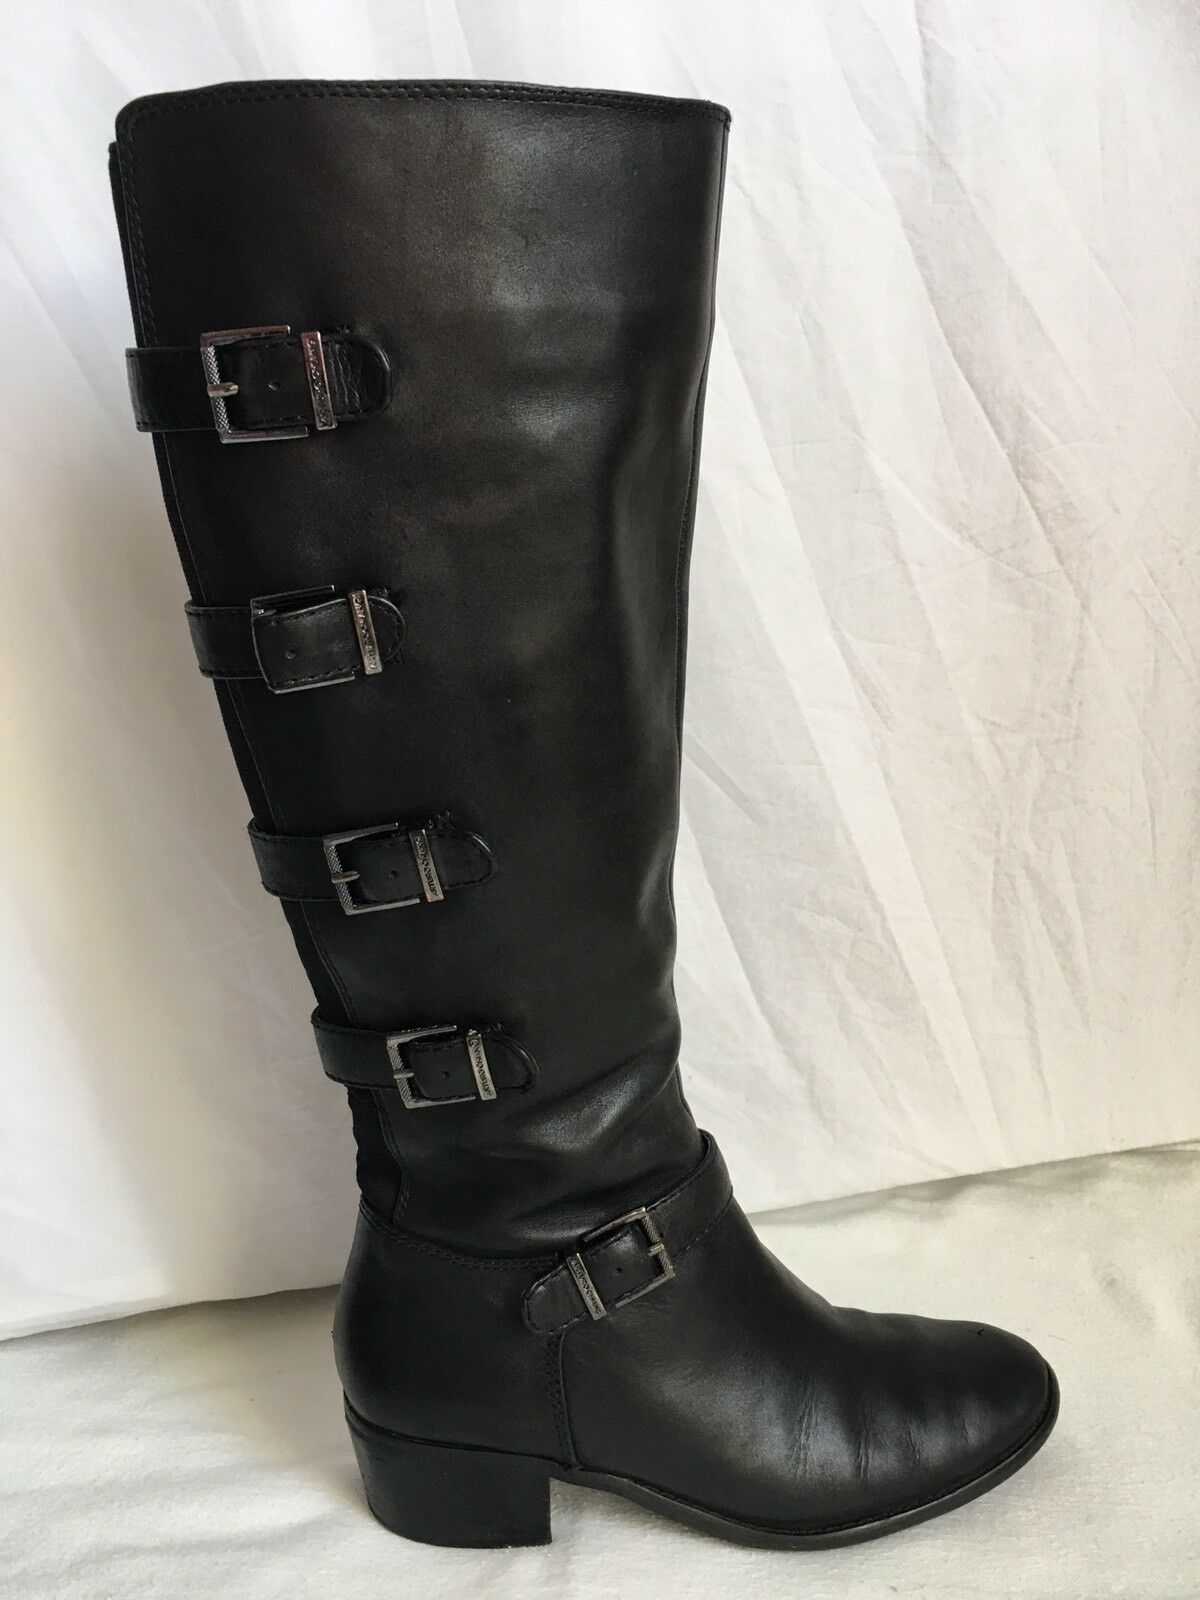 Men's/Women's arturo chiang Black boots 7.5 for you to choose the most economical Excellent stretching